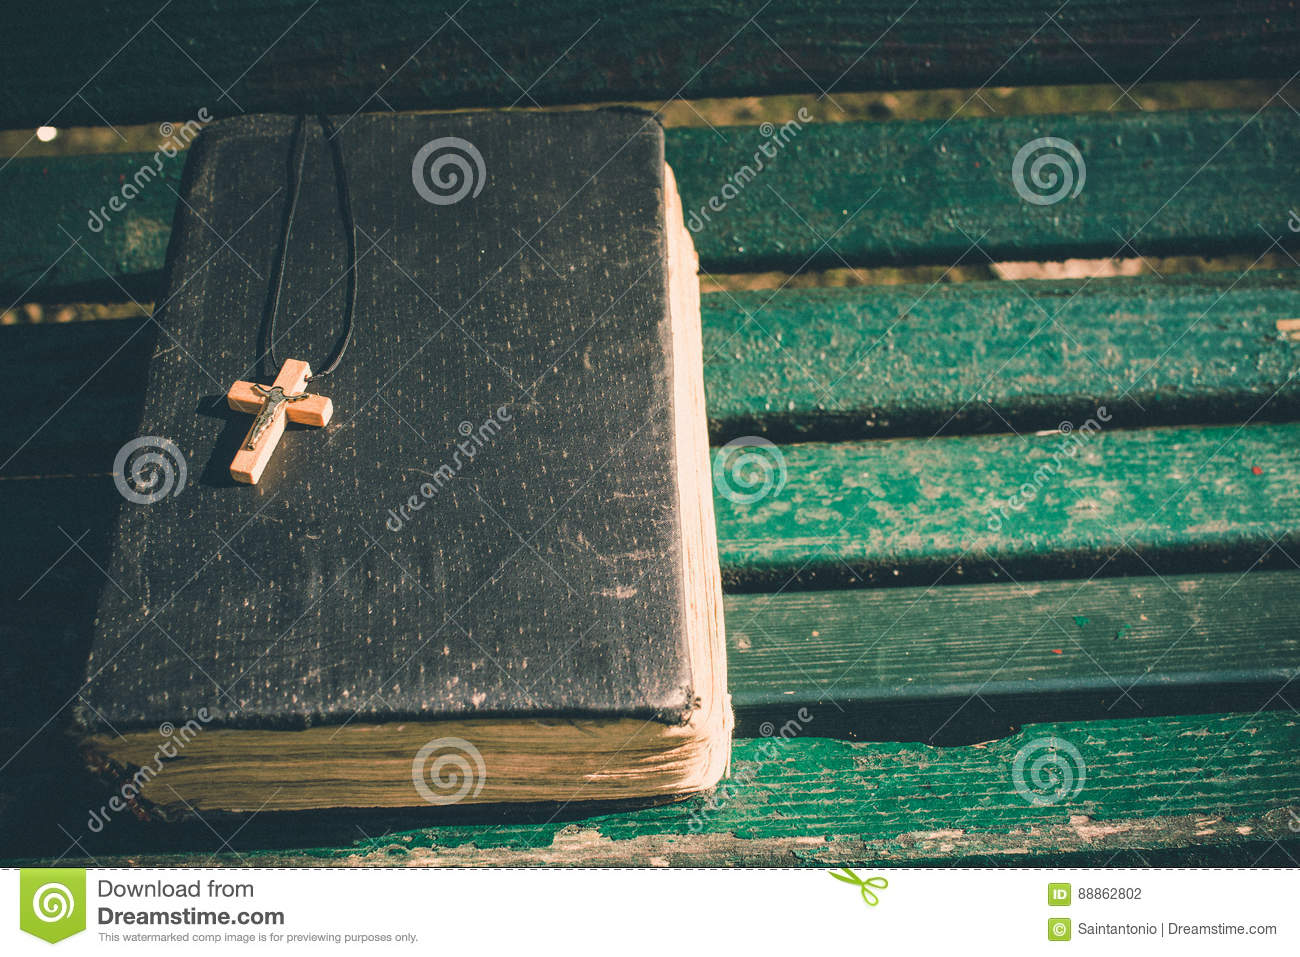 Vintage old holy bible book, grunge textured cover with wooden christian cross. Retro styled image on wood background.